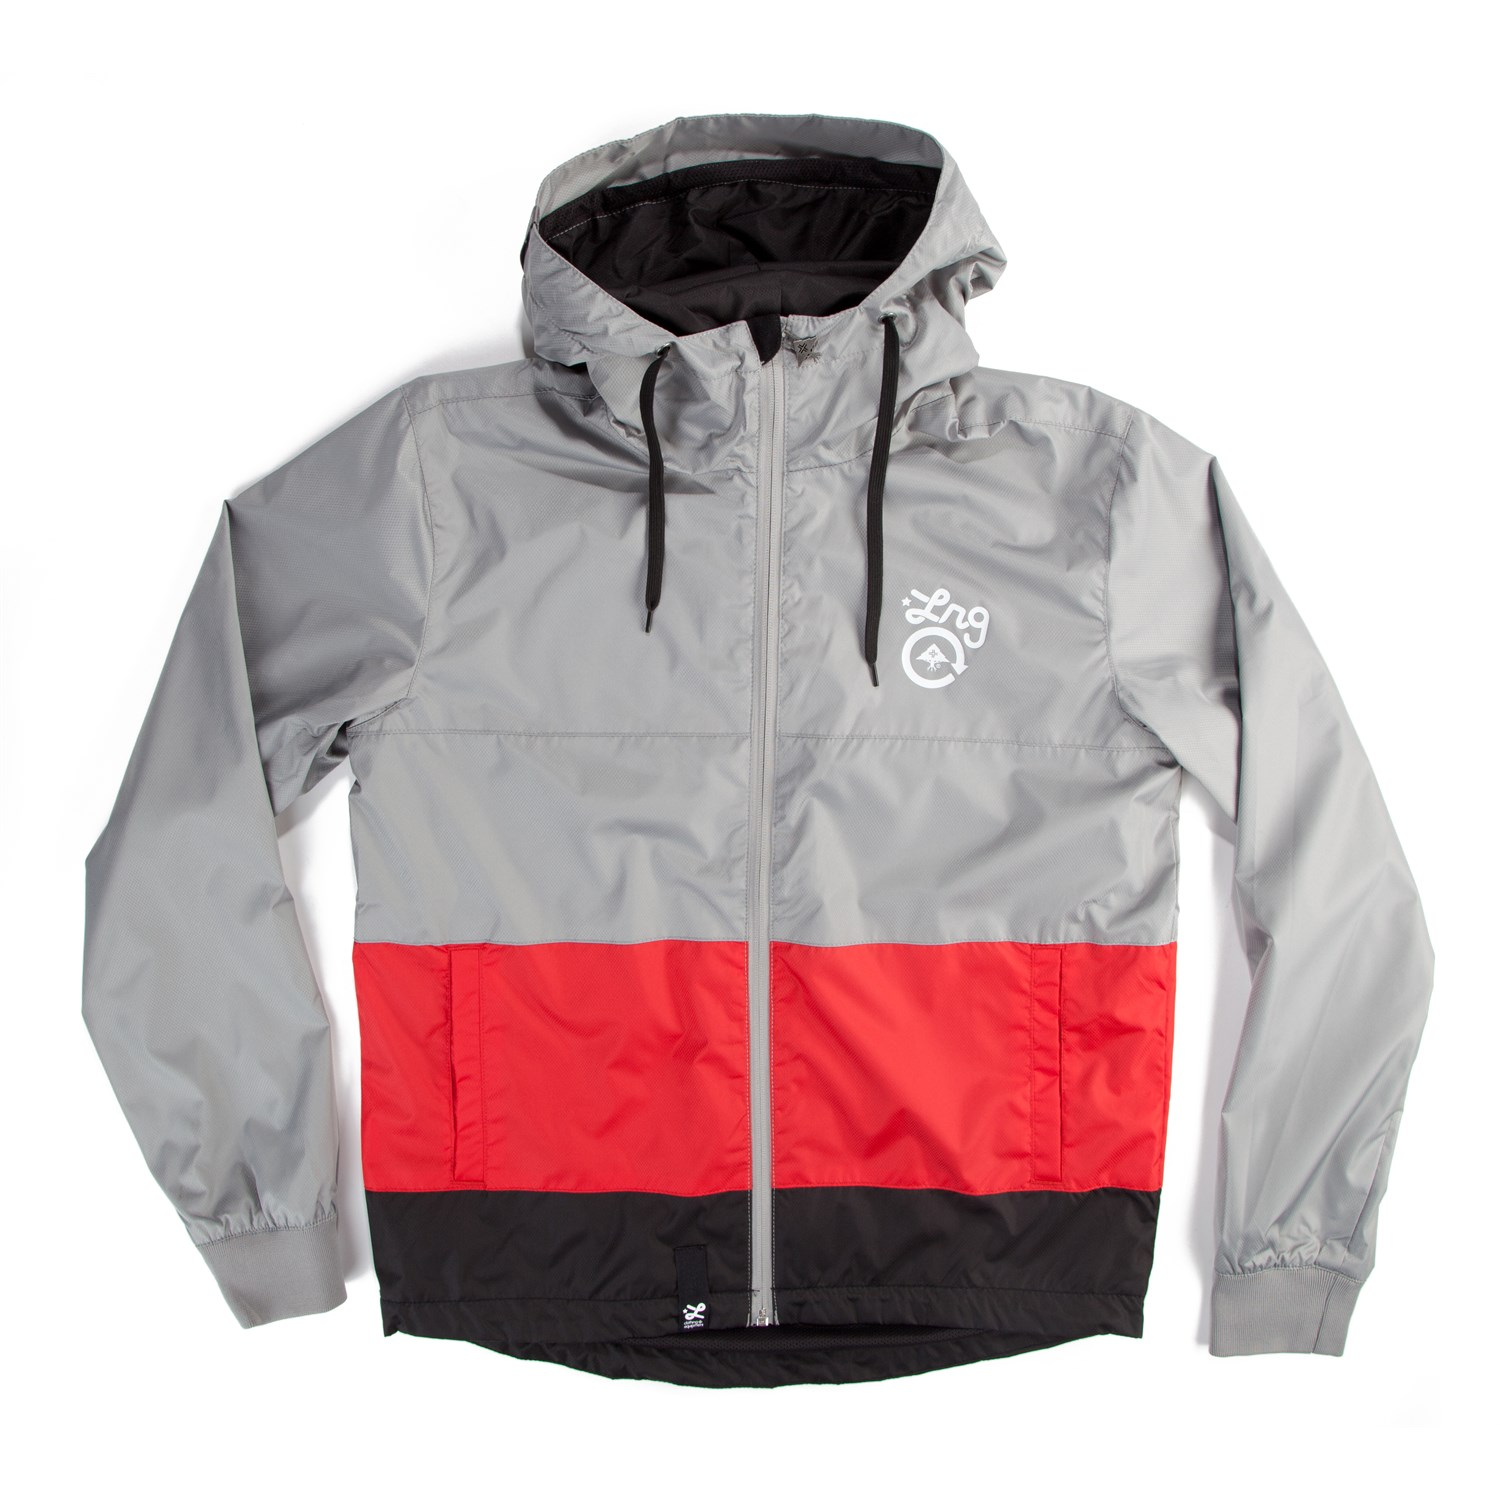 LRG Core Collection Hooded Windbreaker | evo outlet